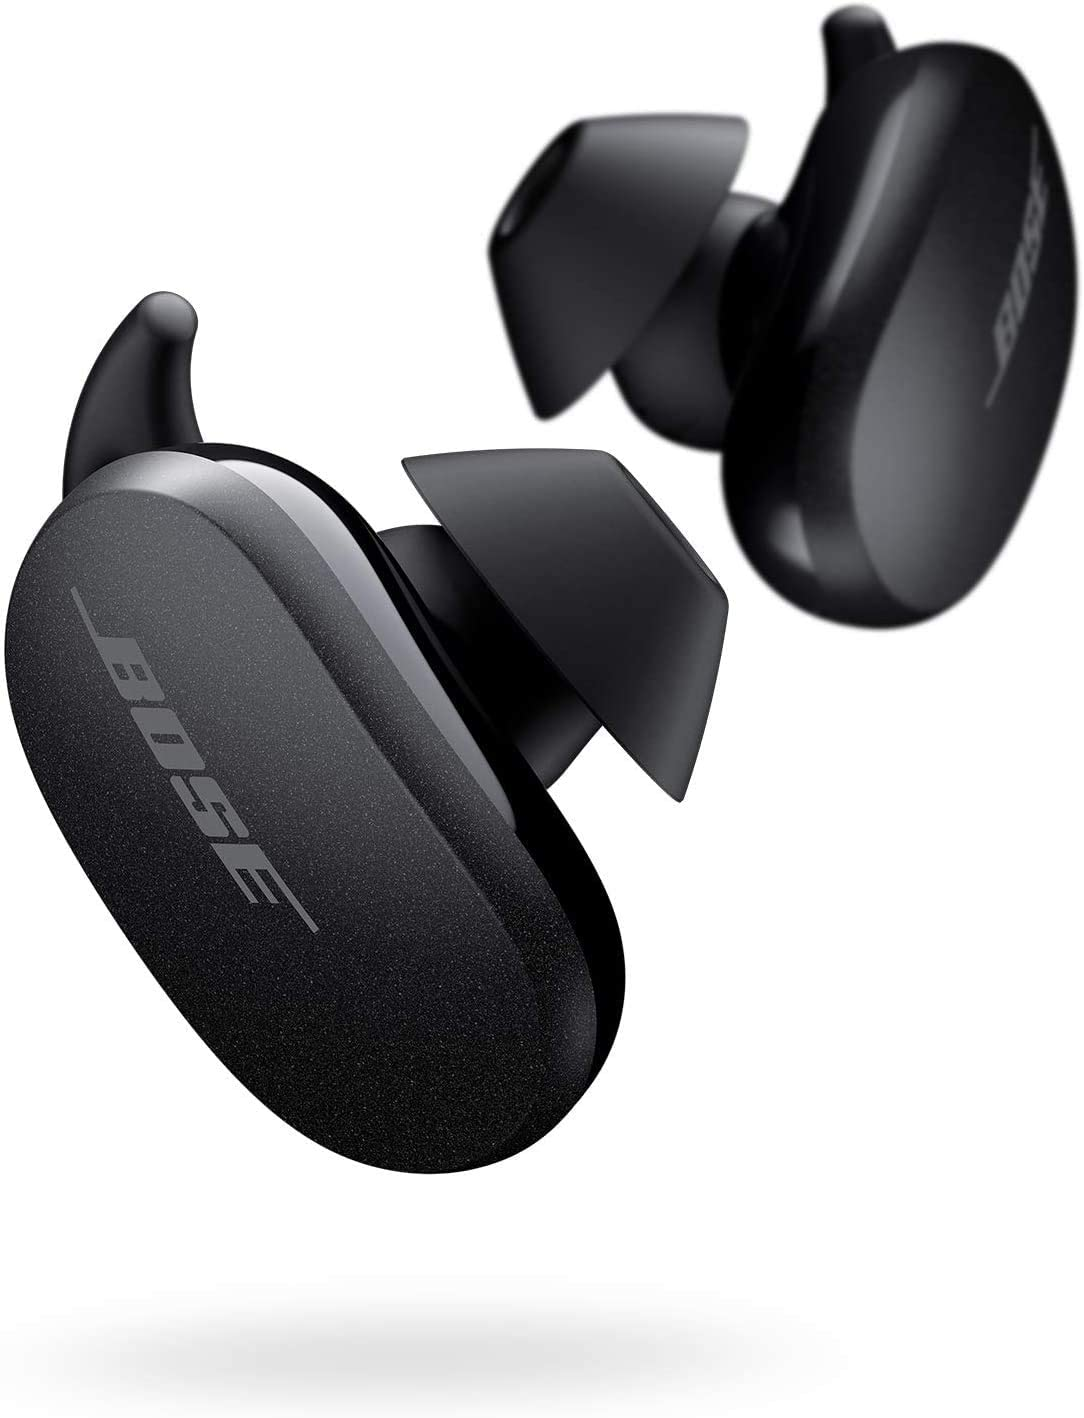 Bose QuietComfort Earbuds for Streamers